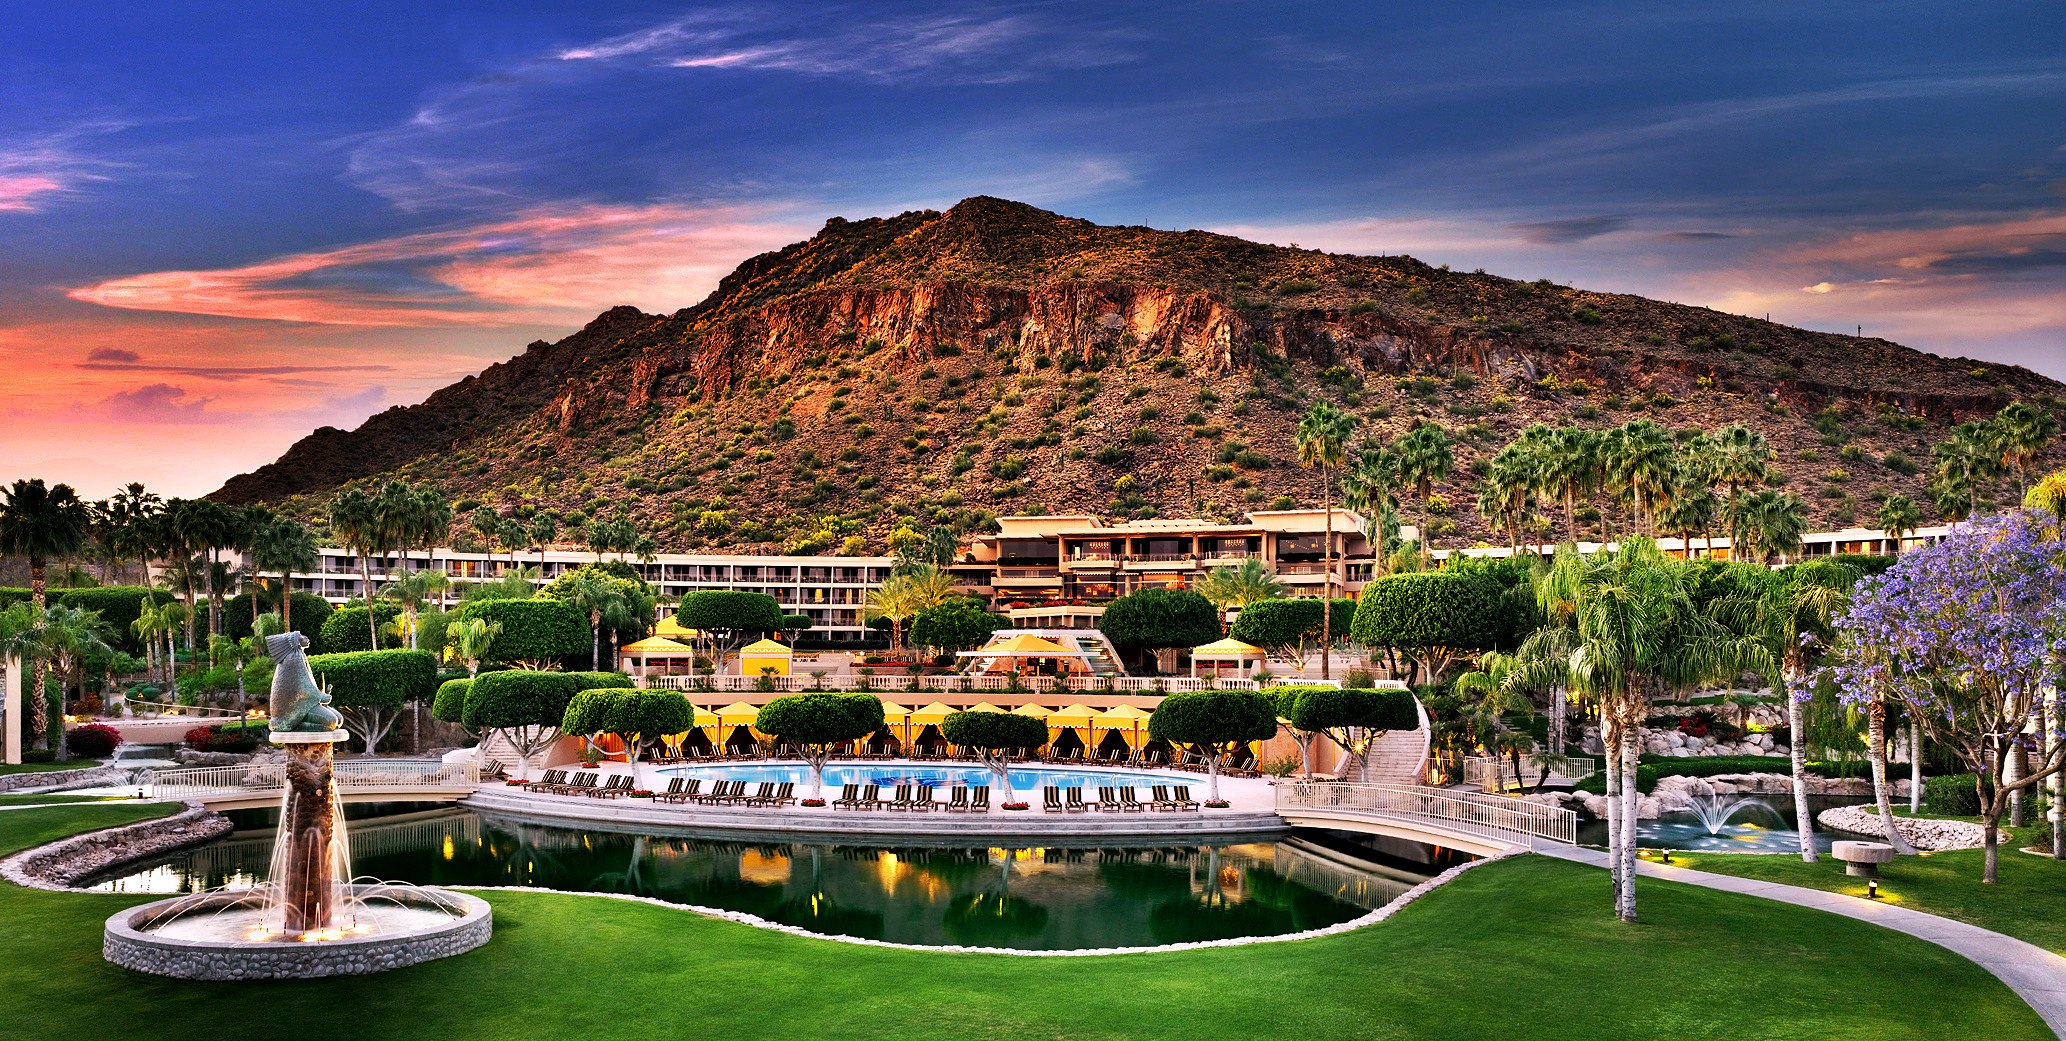 The Phoenician is a classic, luxury resort in Scottsdale, Arizona.